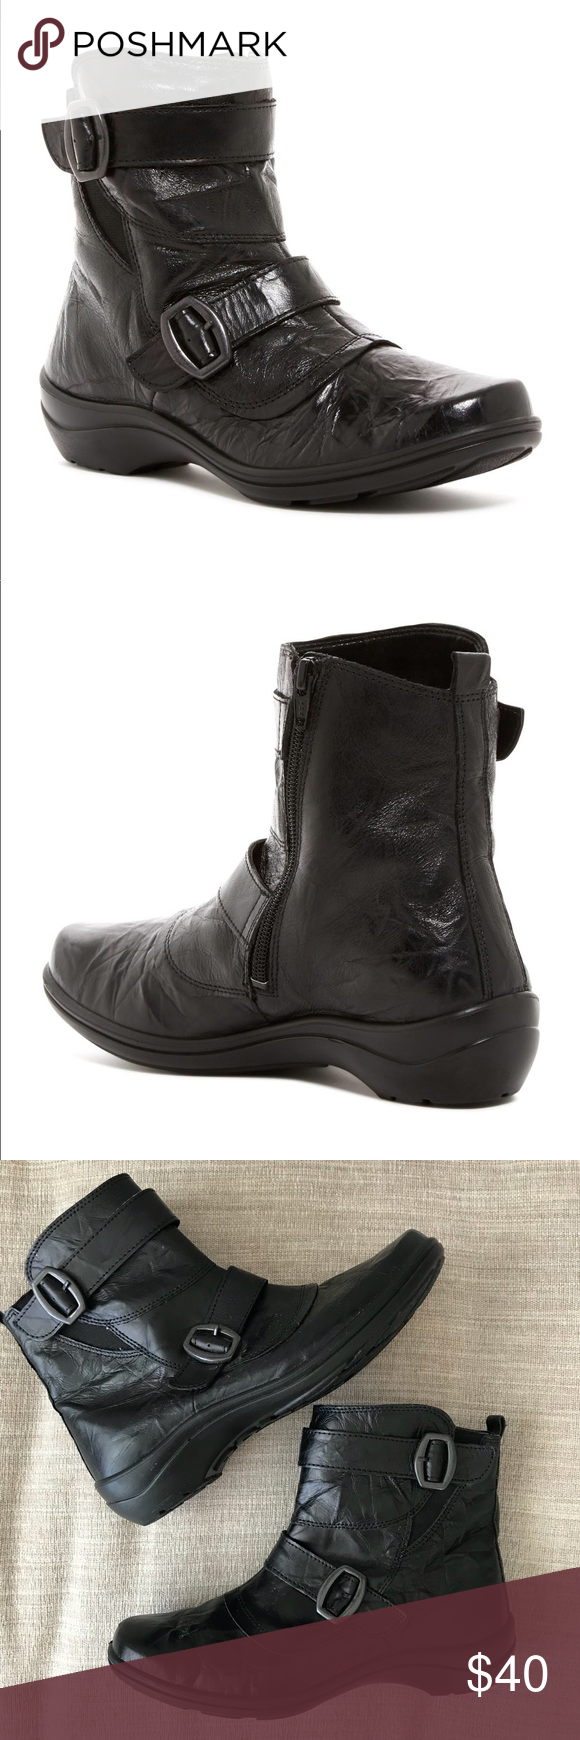 79995aad93 Romika Cassie Boots 39 These are the most comfortable boots in the world!  Like walking